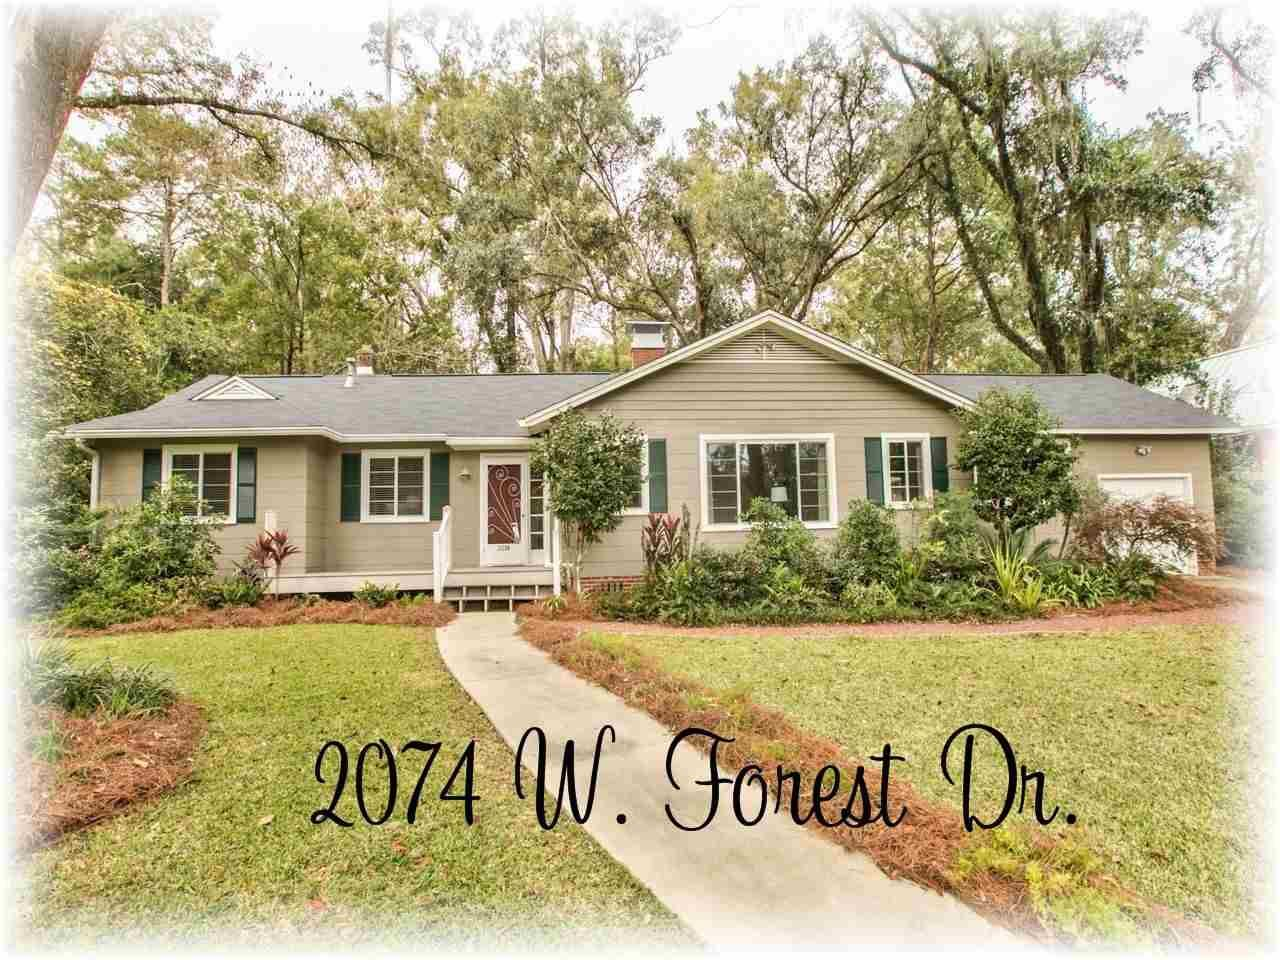 Photo for 2074 W FOREST DRIVE, TALLAHASSEE, FL 32303 (MLS # 313308)